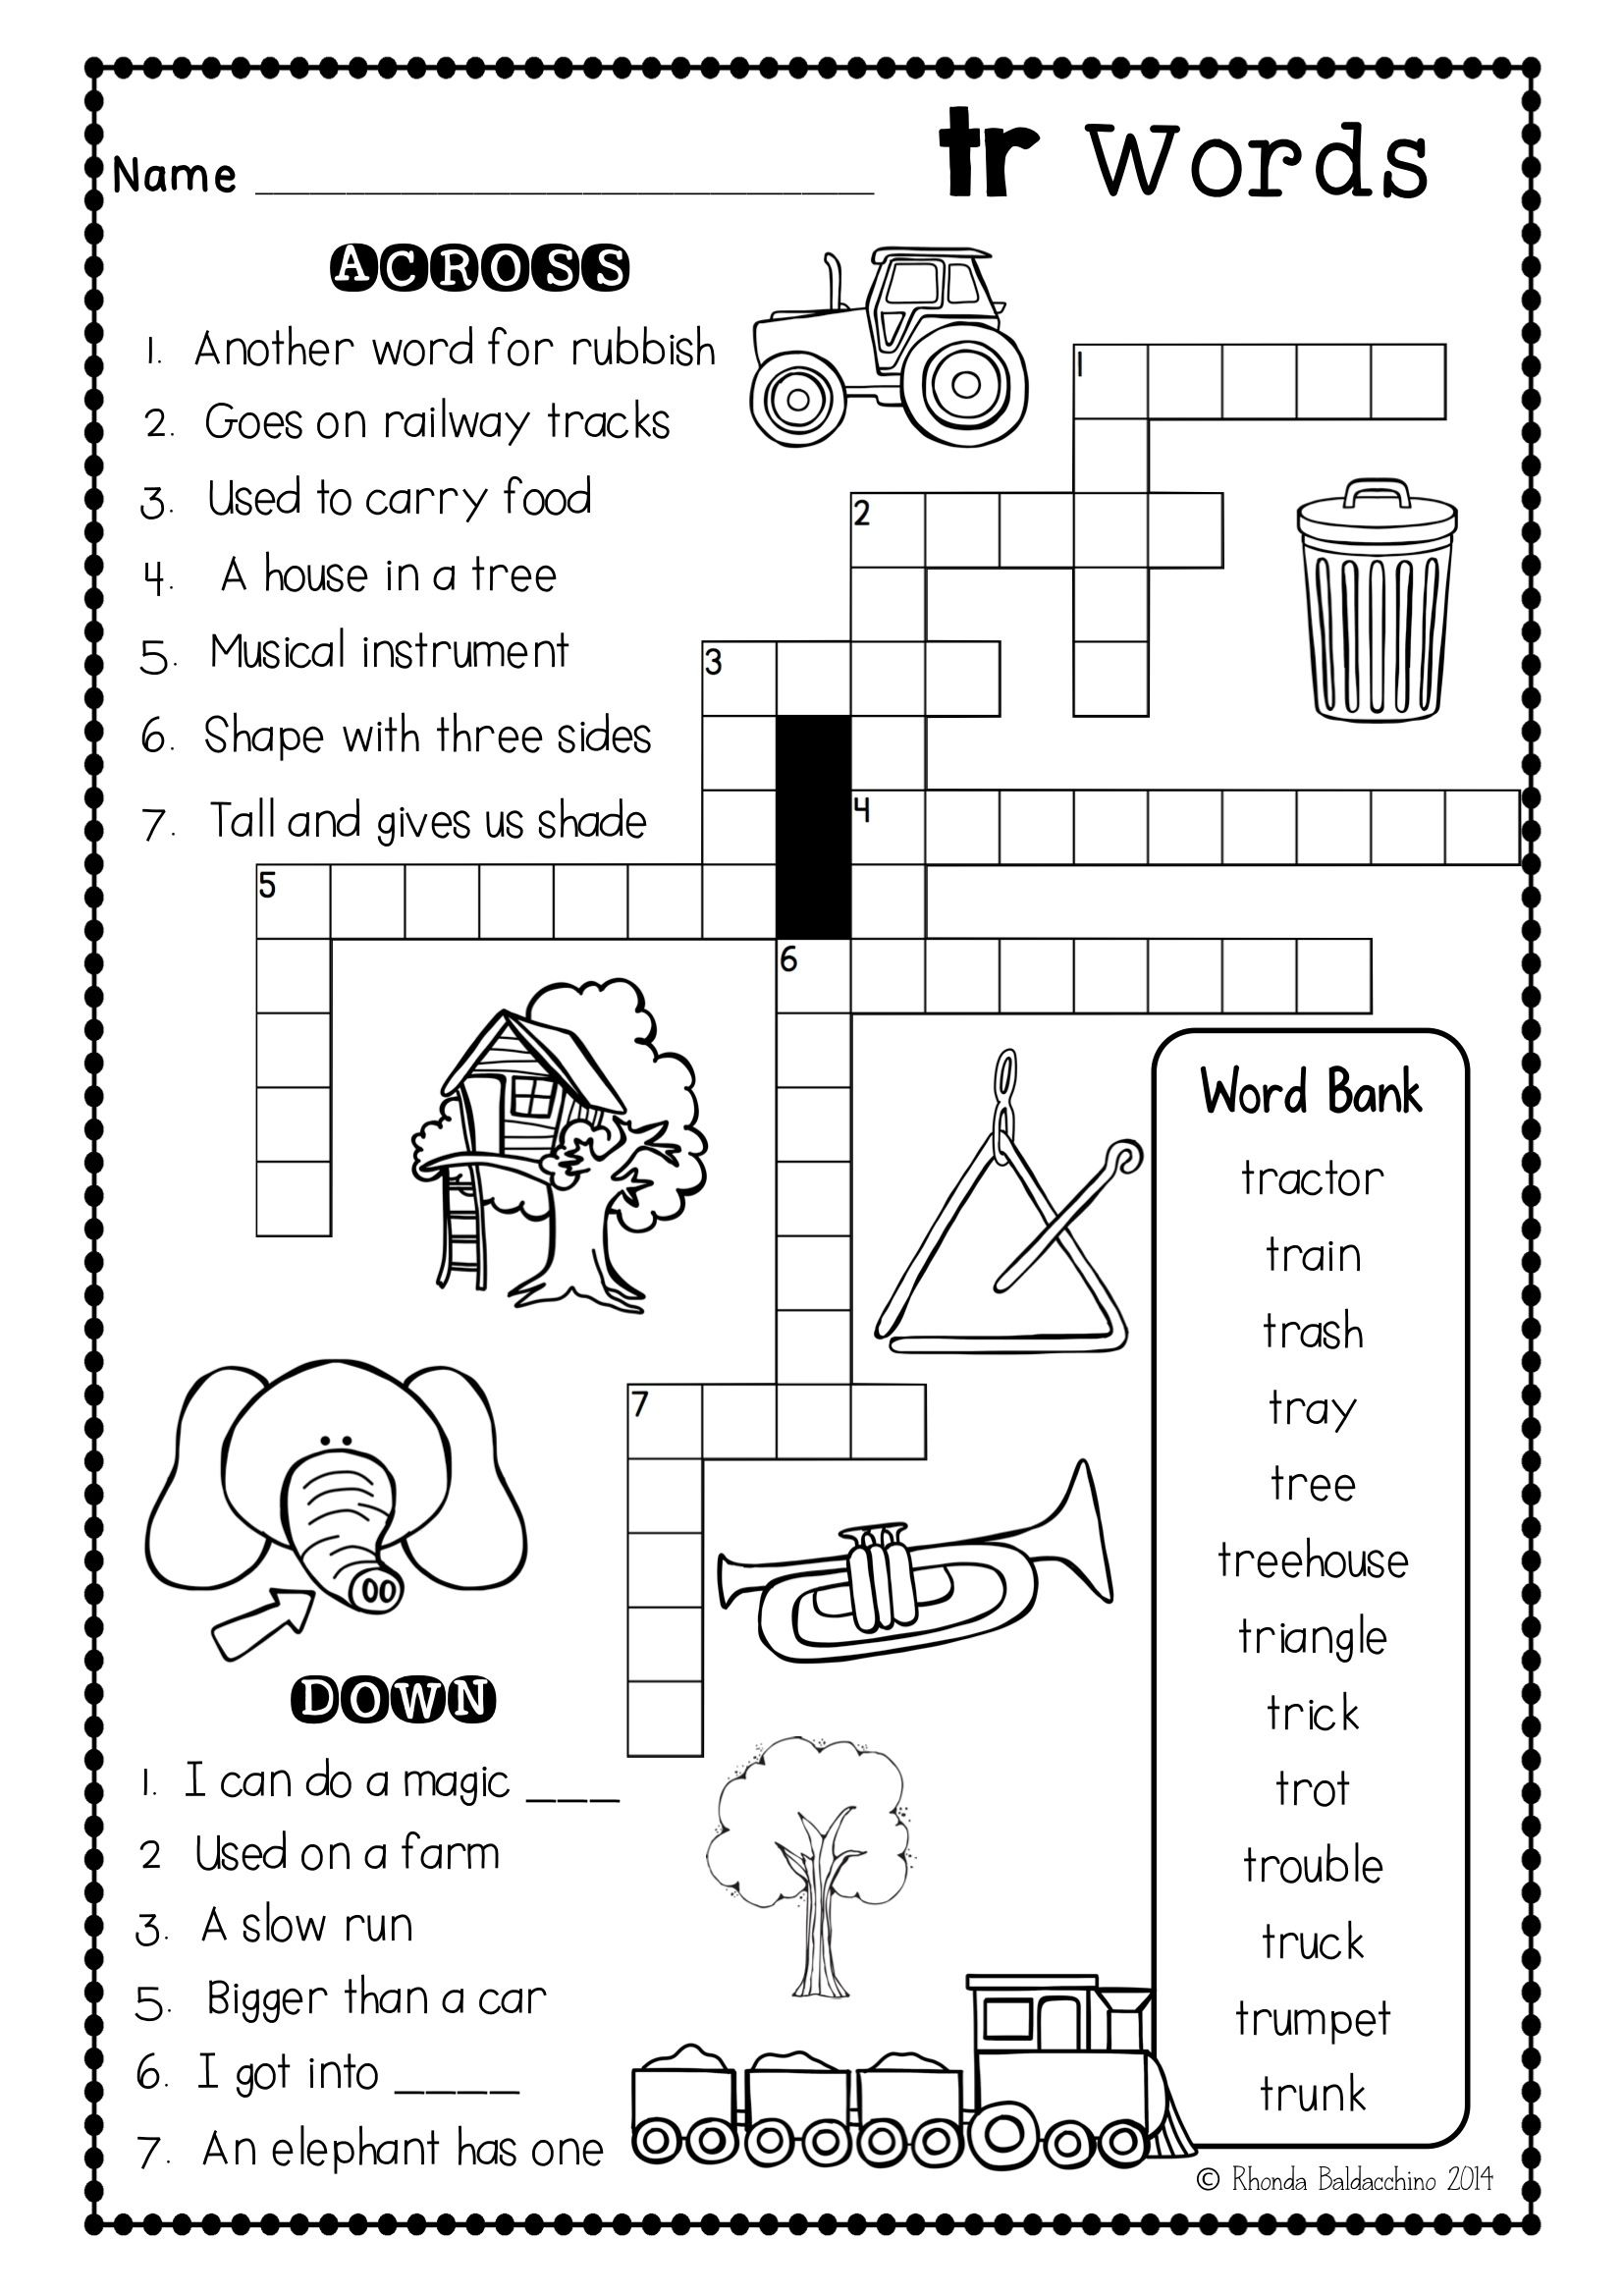 These Are Fun Blends Crossword Puzzles To Supplement Any Phonics Program Blends Worksheets Consonant Blends Worksheets Kindergarten Worksheets Printable [ 2338 x 1653 Pixel ]